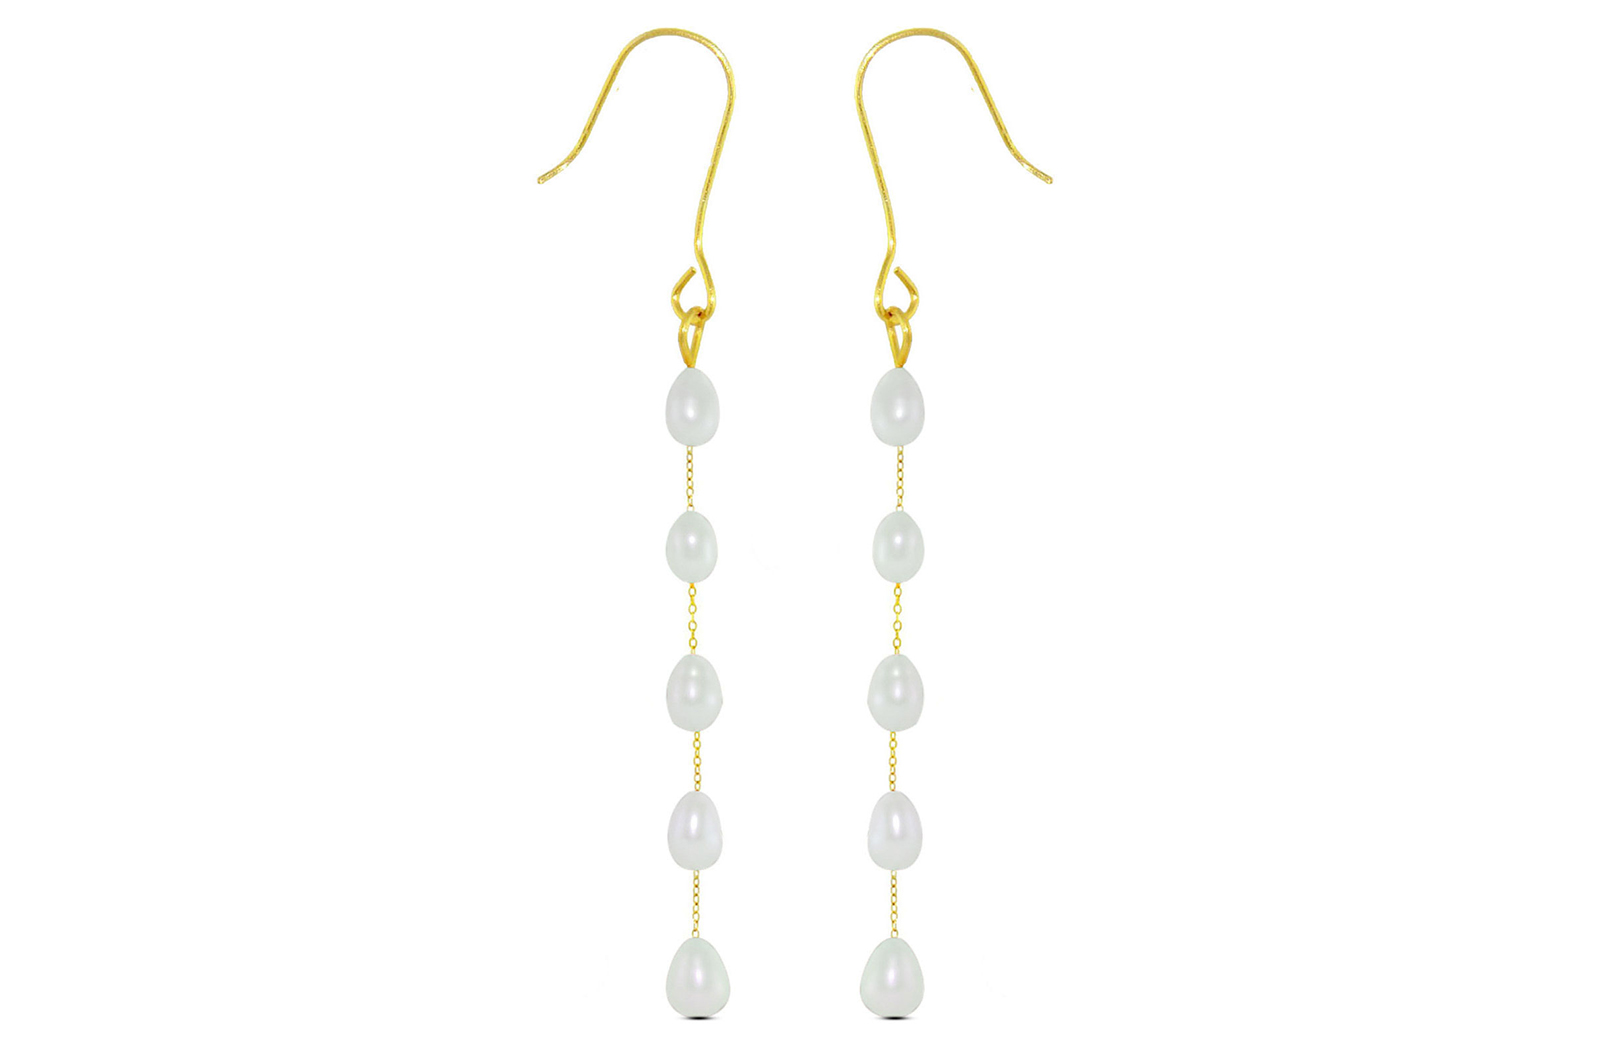 Vera Perla 18K Gold White Pearls Opera Drop Earrings